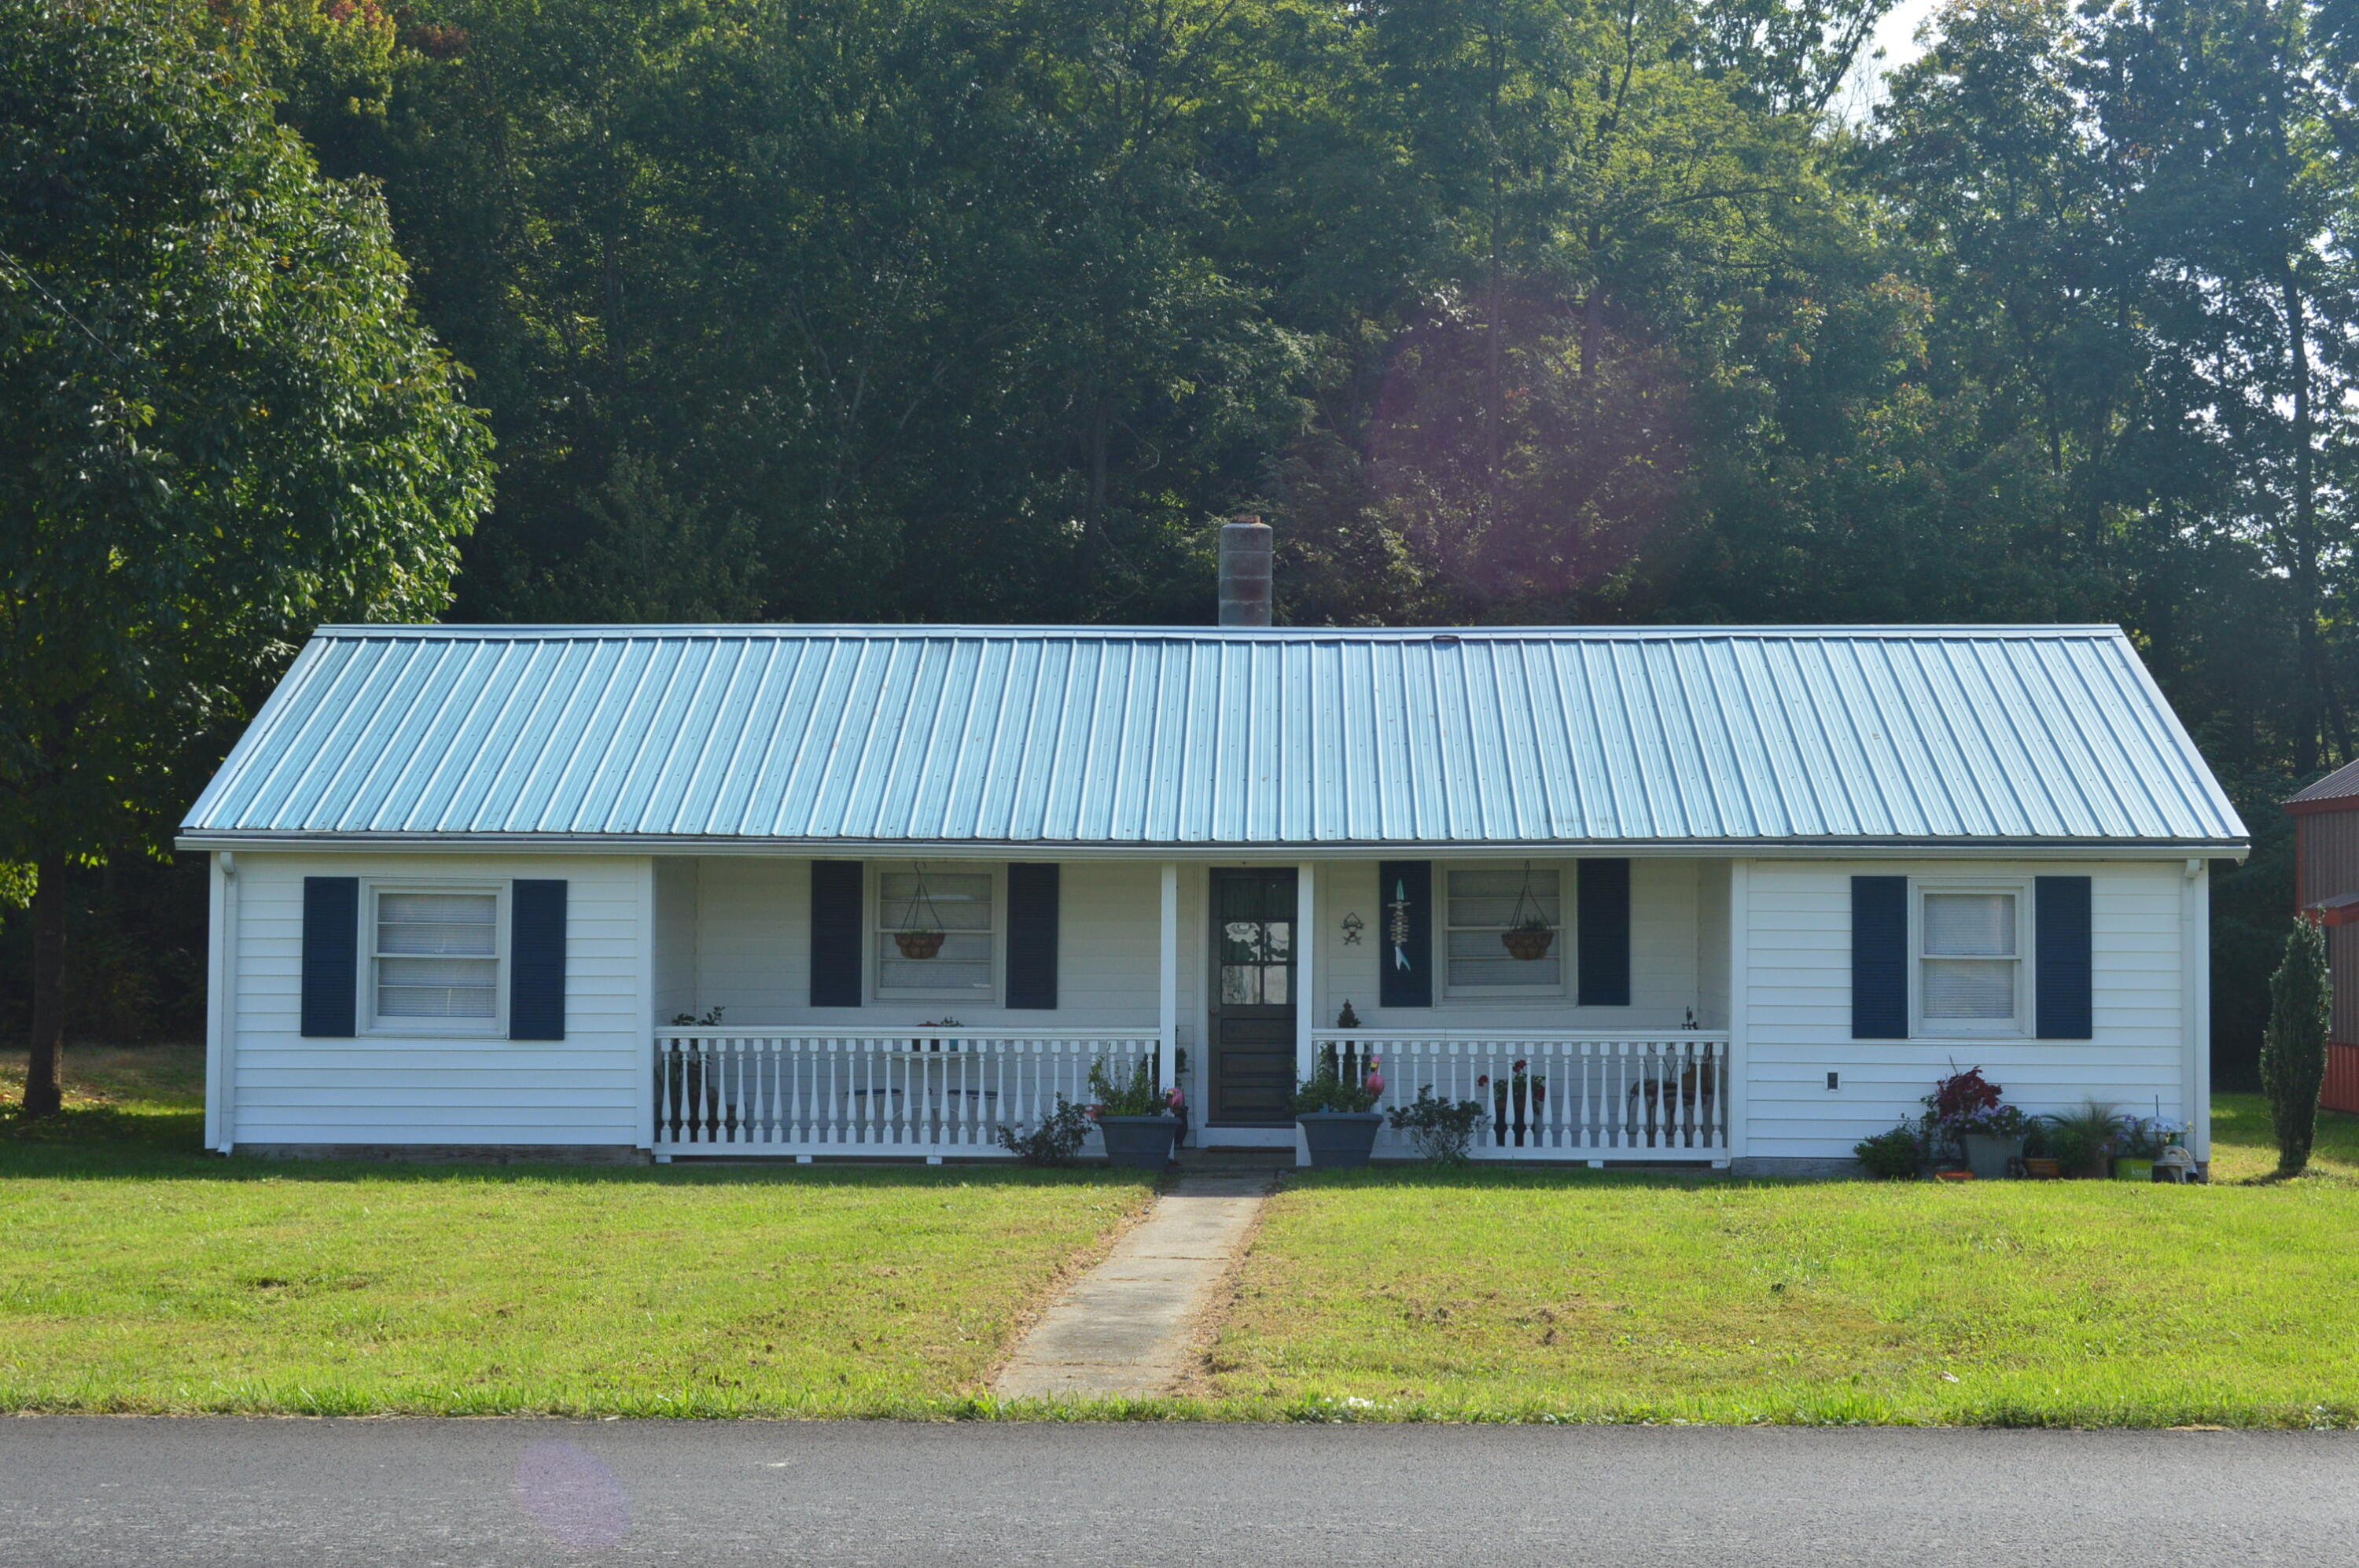 8915 KY HWY 643, Crab Orchard, KY 40419